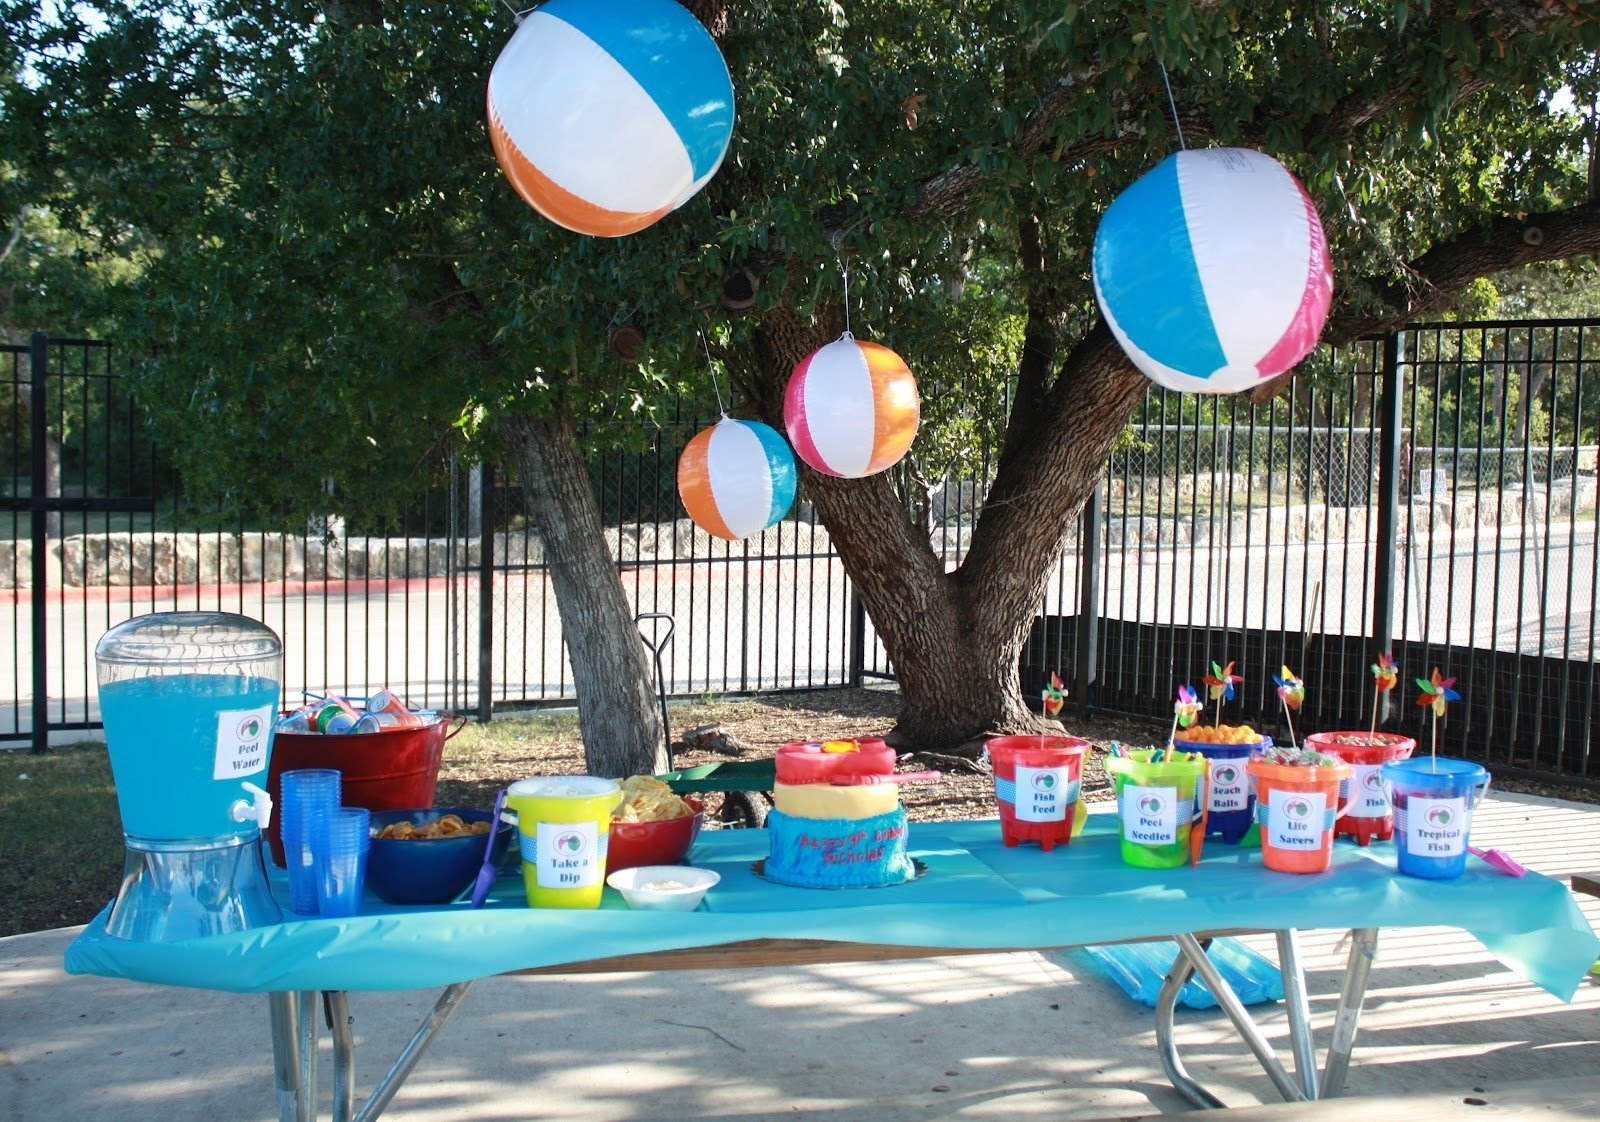 10 Pretty Pool Party Ideas For 13 Year Olds stunning pool party ideas for 13 year olds 67 for your home decor